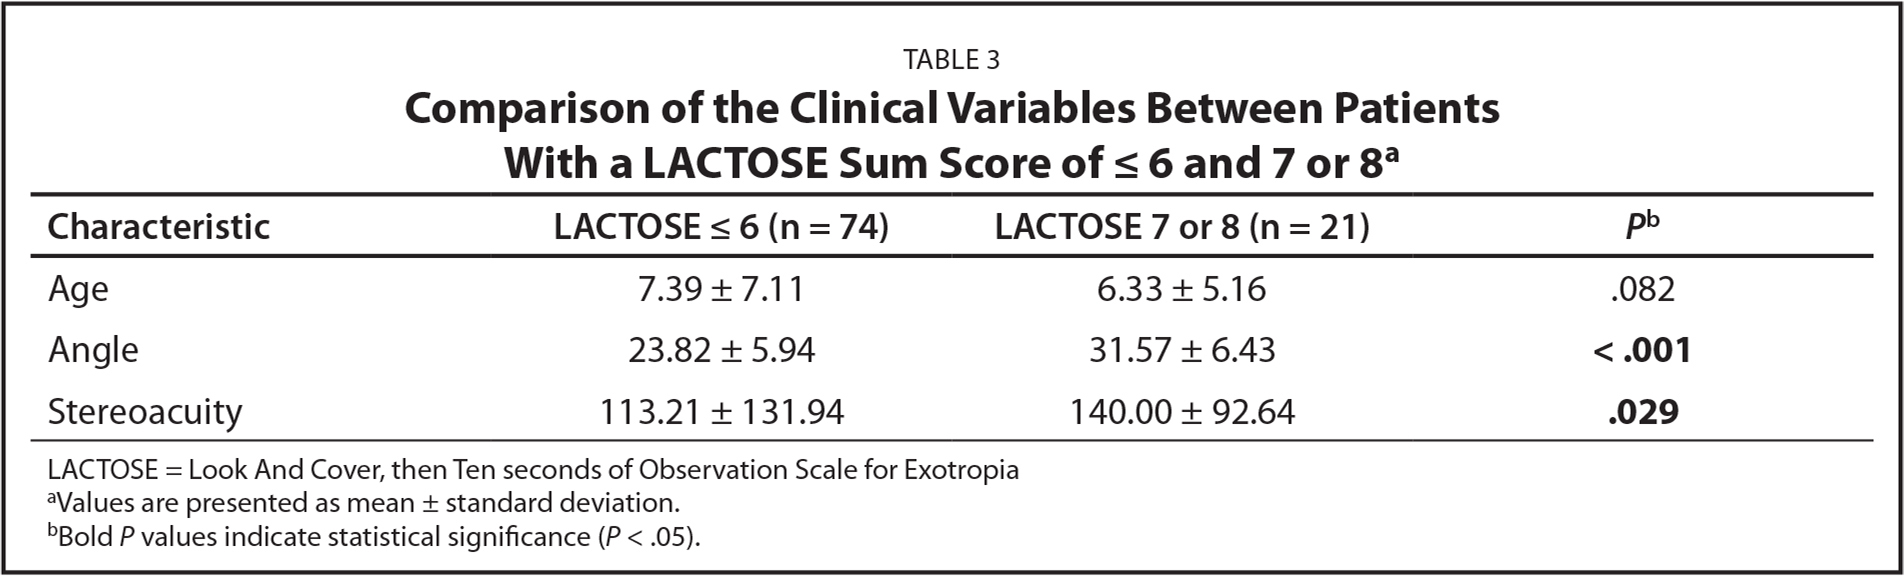 Comparison of the Clinical Variables Between Patients With a LACTOSE Sum Score of ≤ 6 and 7 or 8a